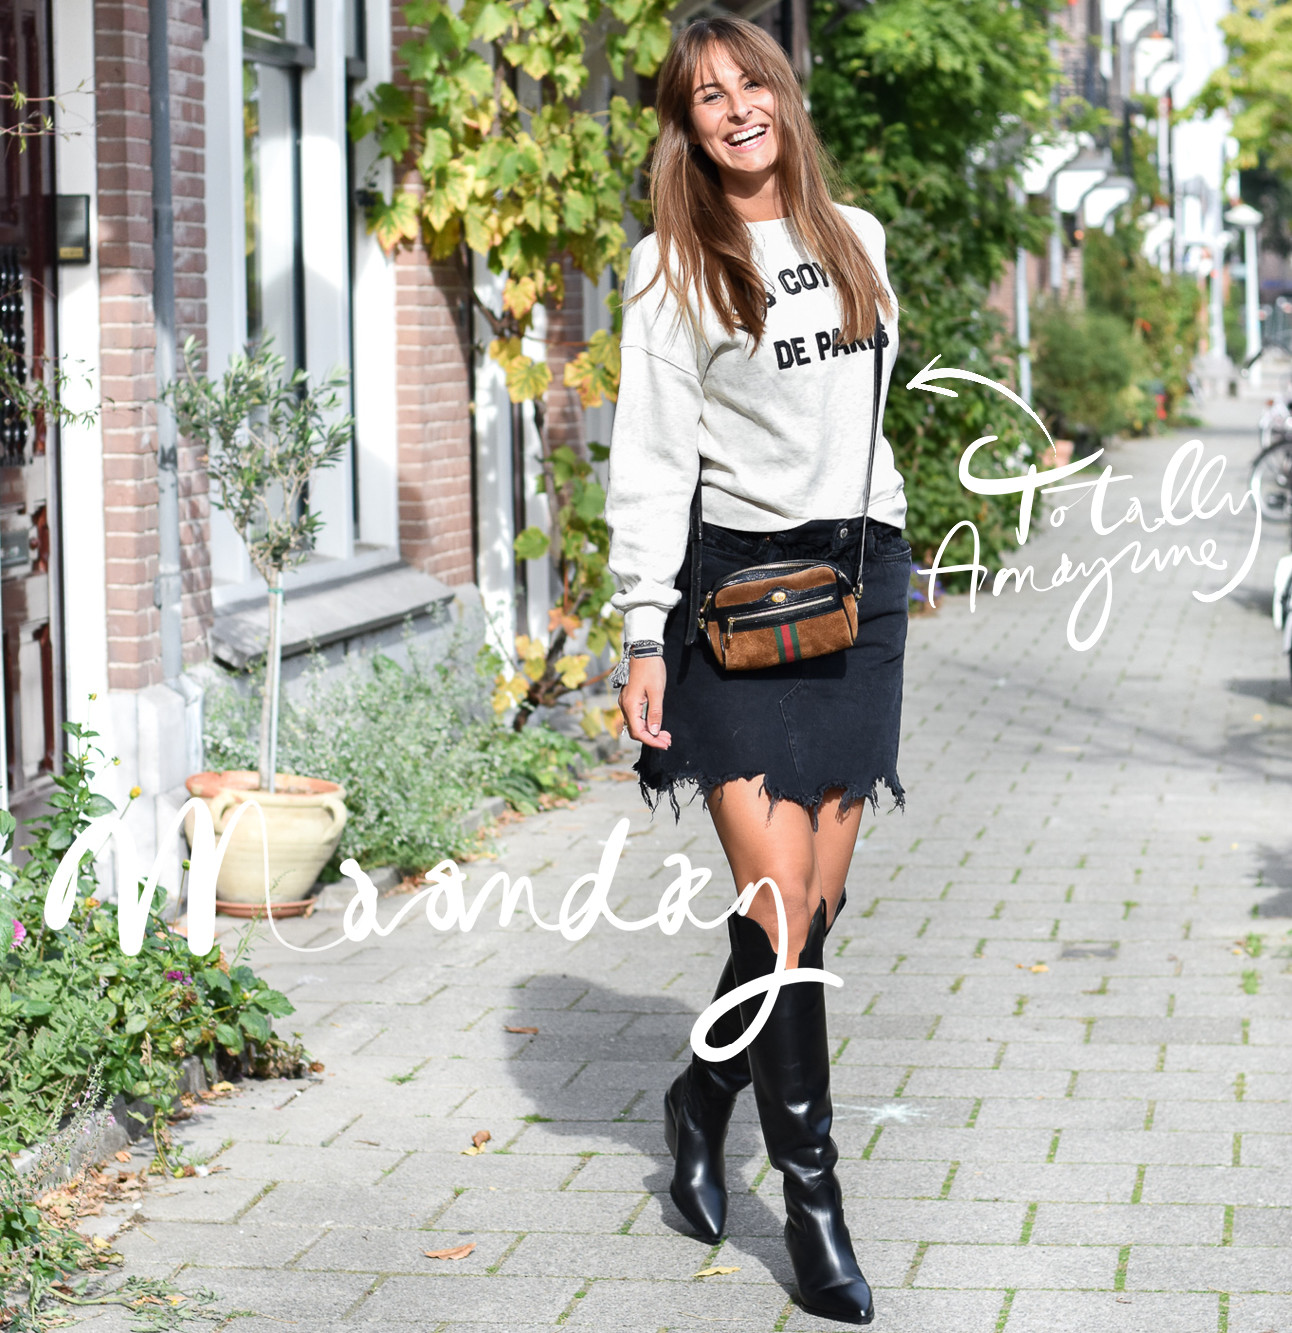 Lilian Brijl in de Look of the day